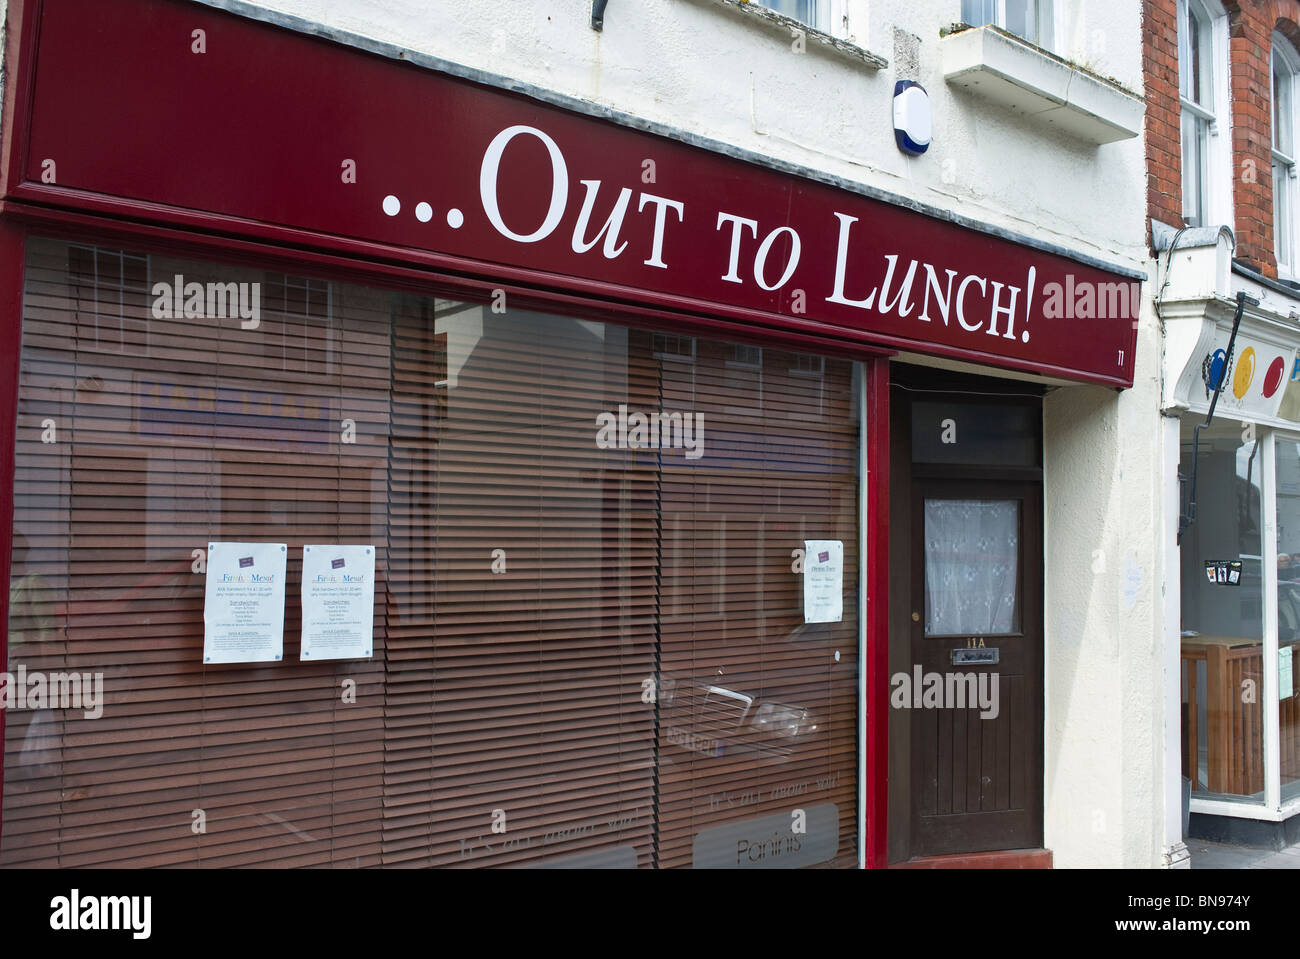 Shop 'Out To Lunch' with drawn shutters - Stock Image